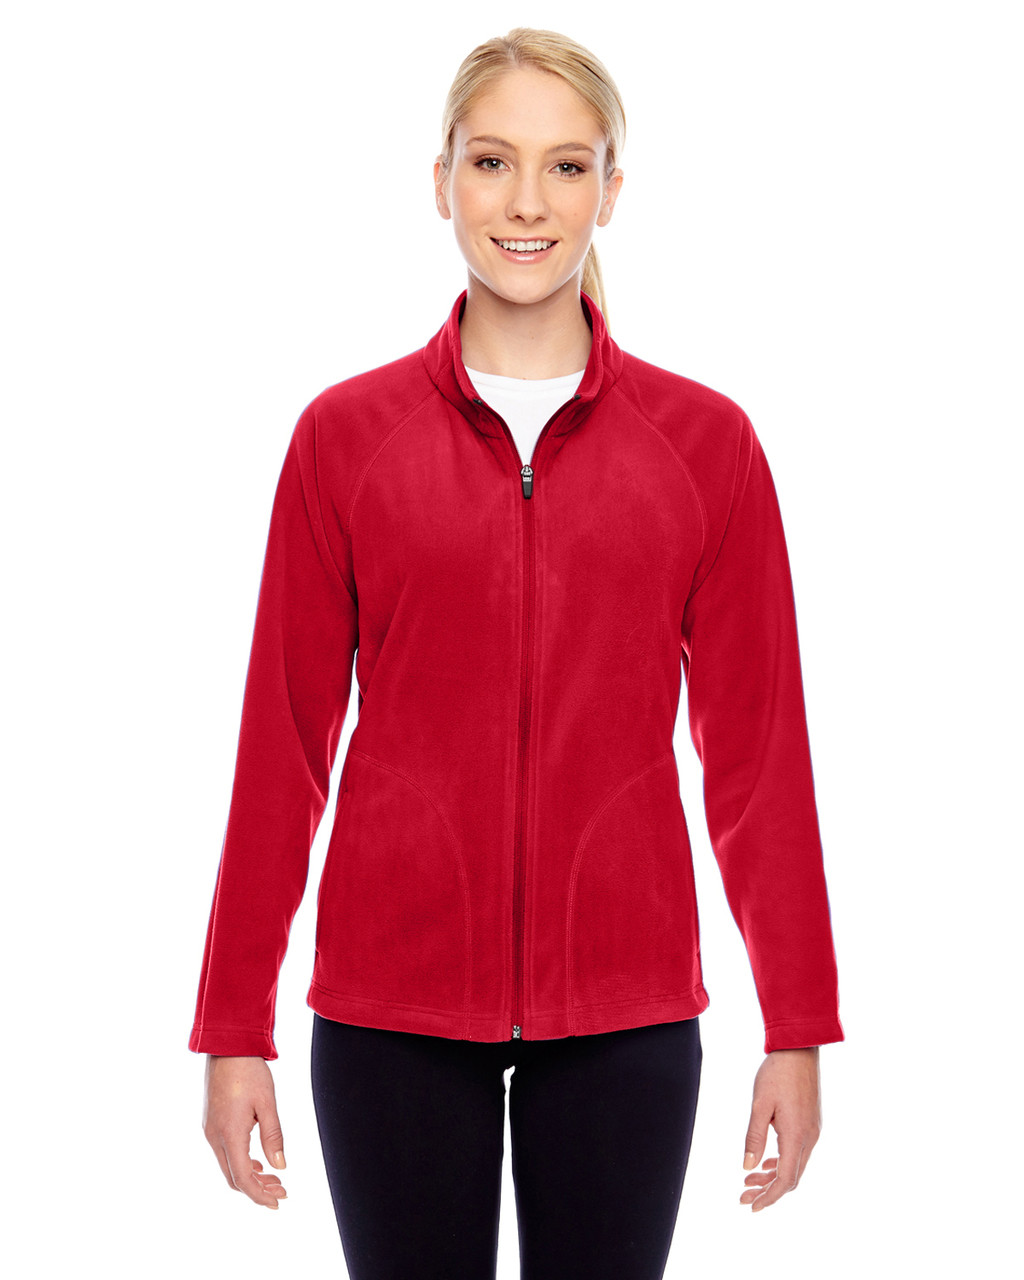 Red - TT90W Team 365 Ladies' Campus Microfleece Jacket | BlankClothing.ca